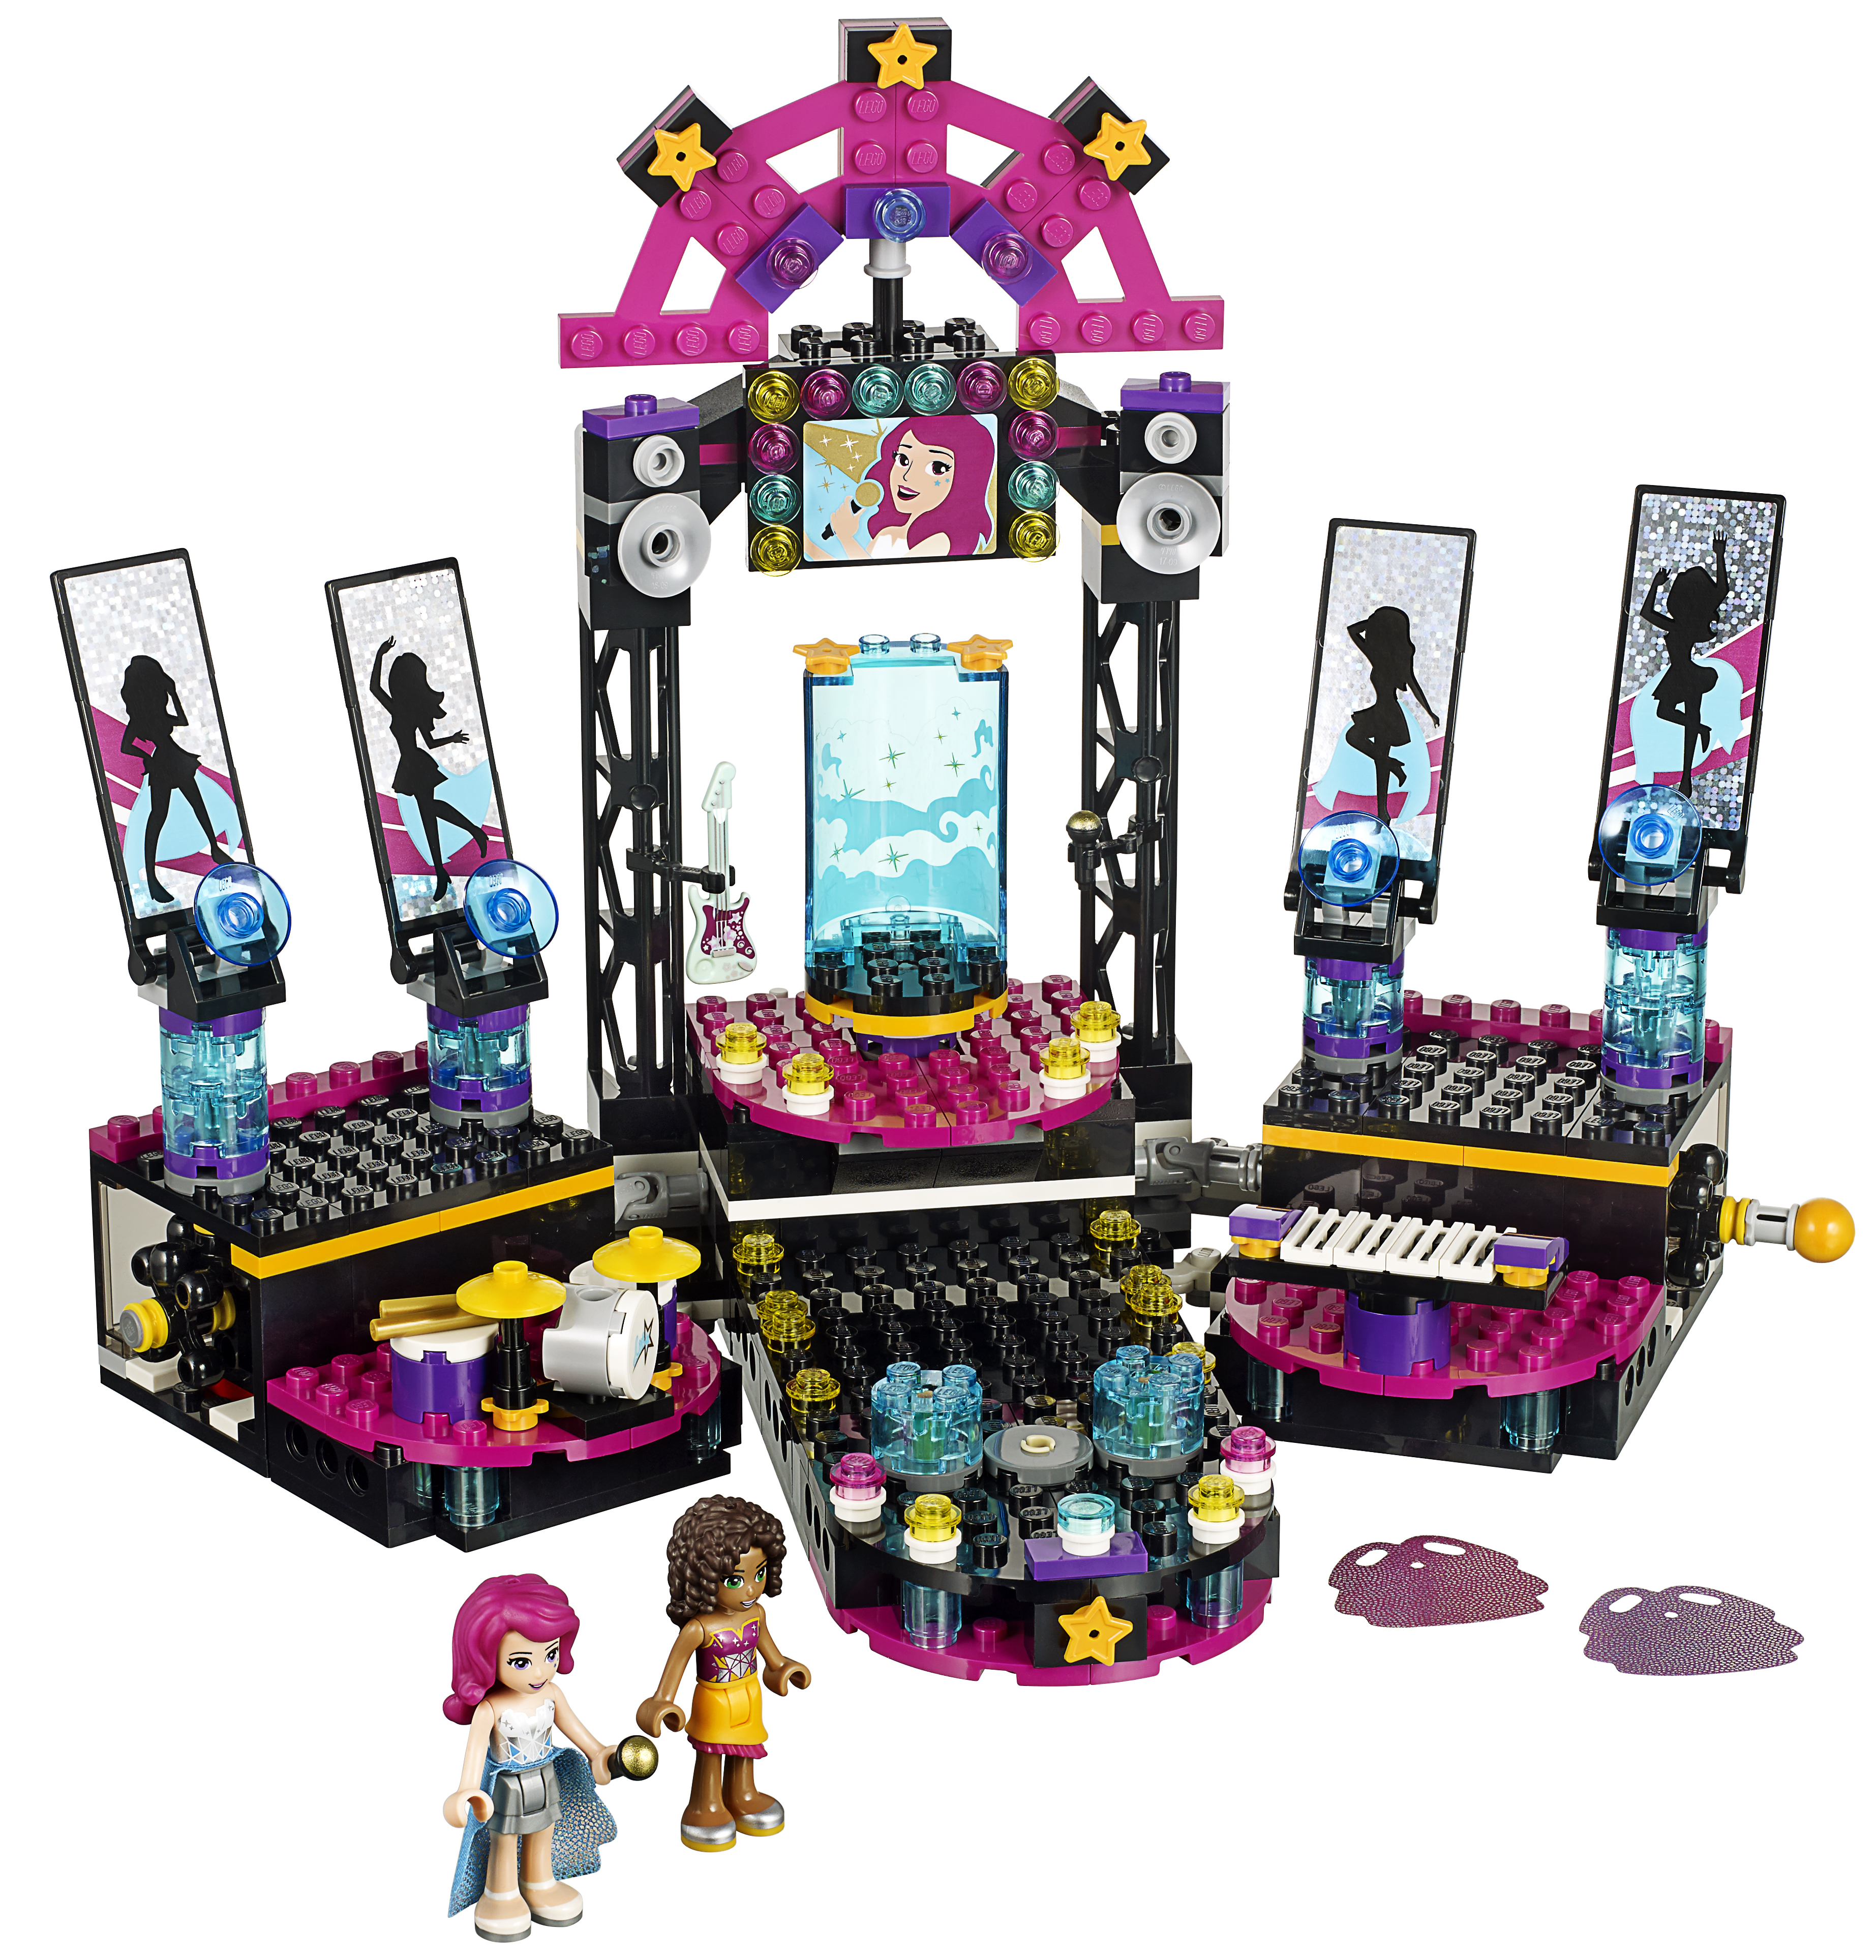 LEGO Friends Popstar Showbühne 41105.